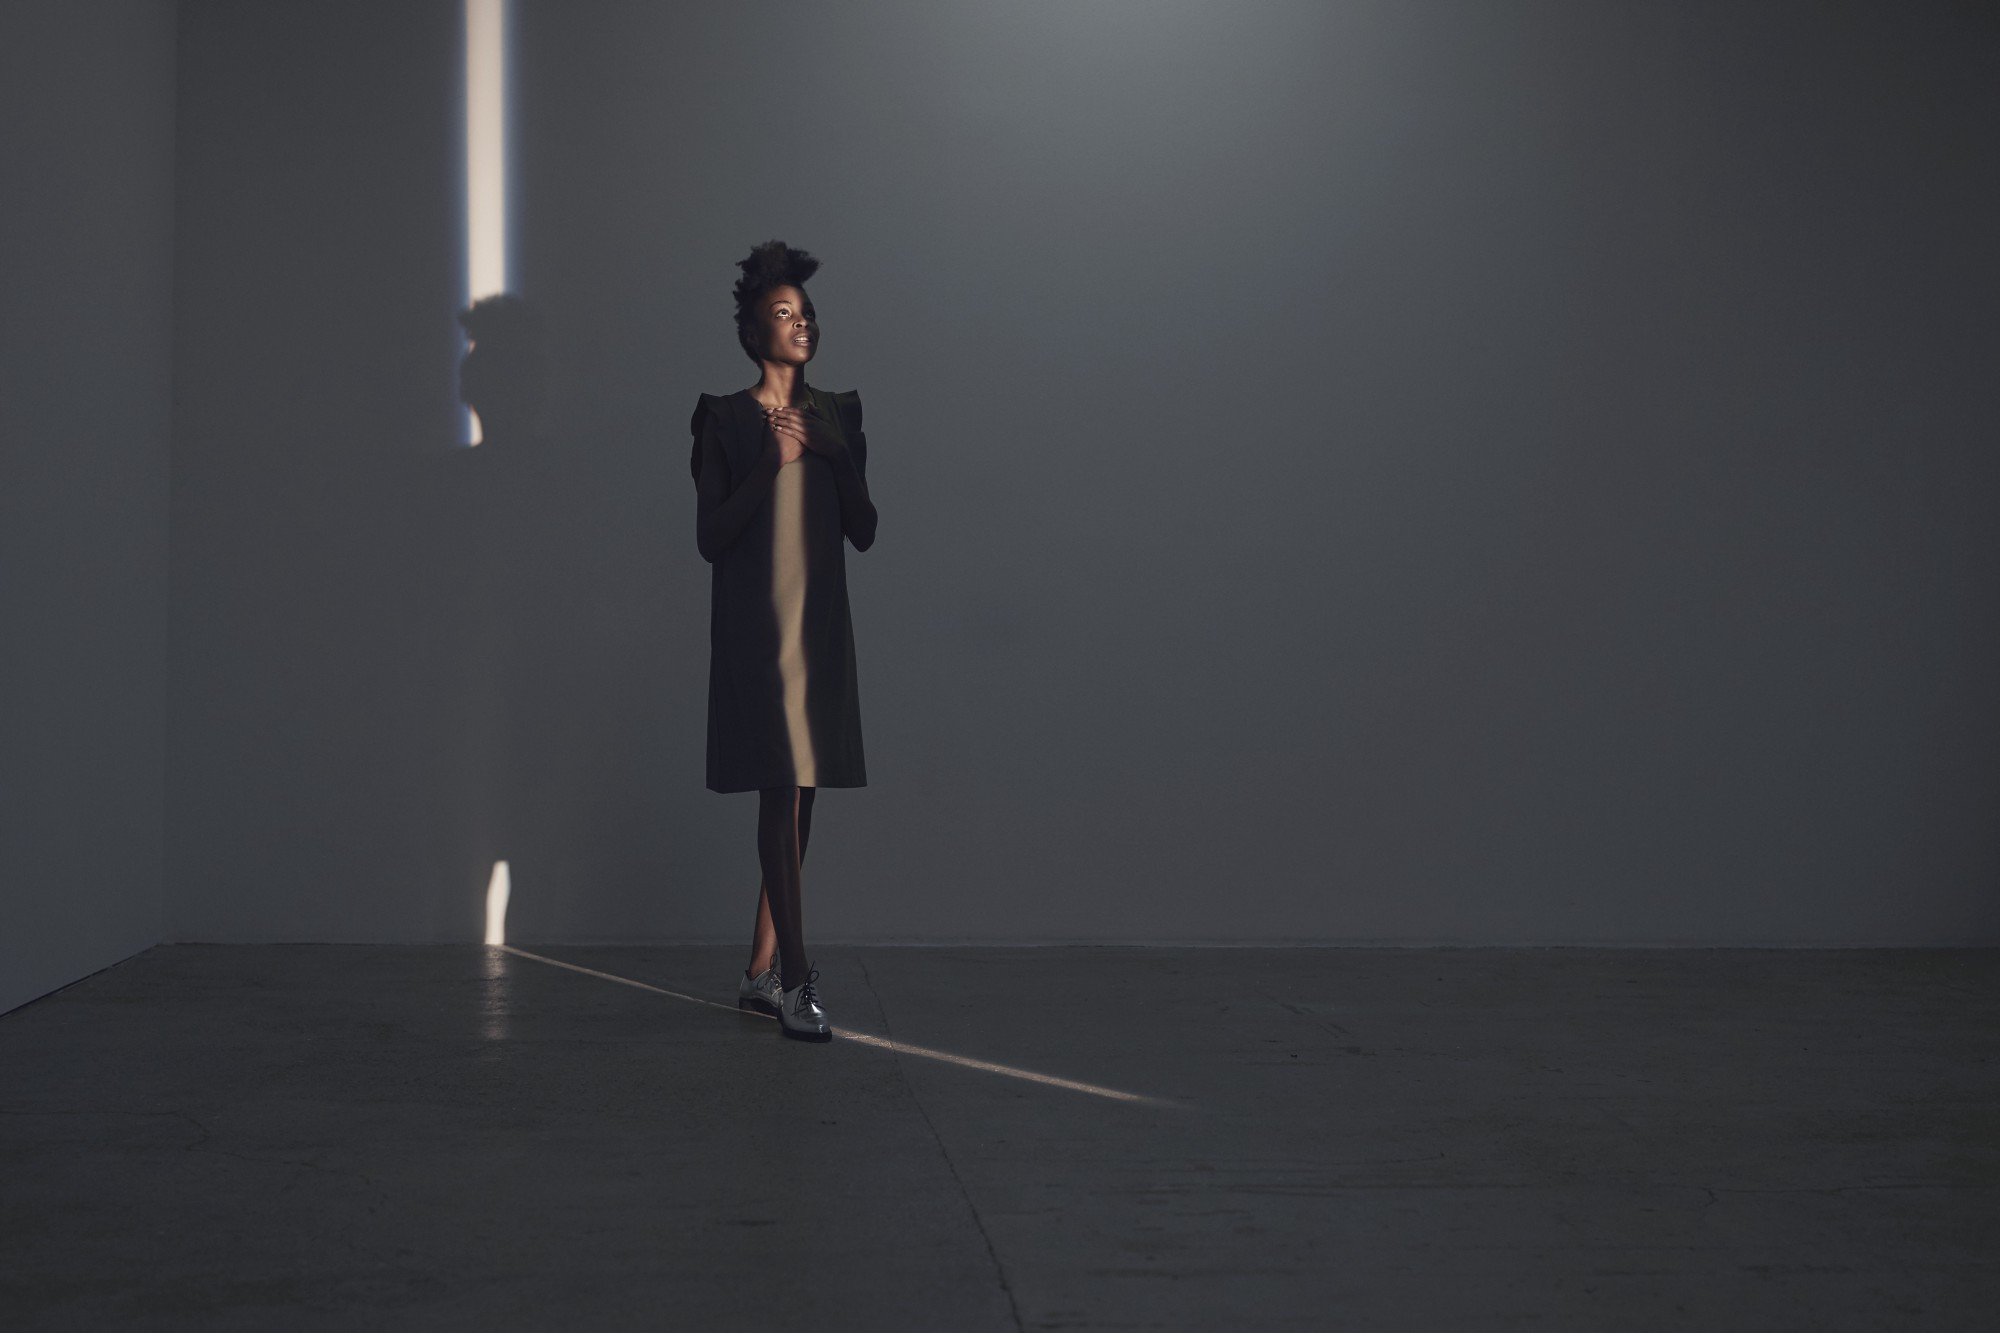 Woman walking in thin light stripe and looking up, in studio with concrete floor